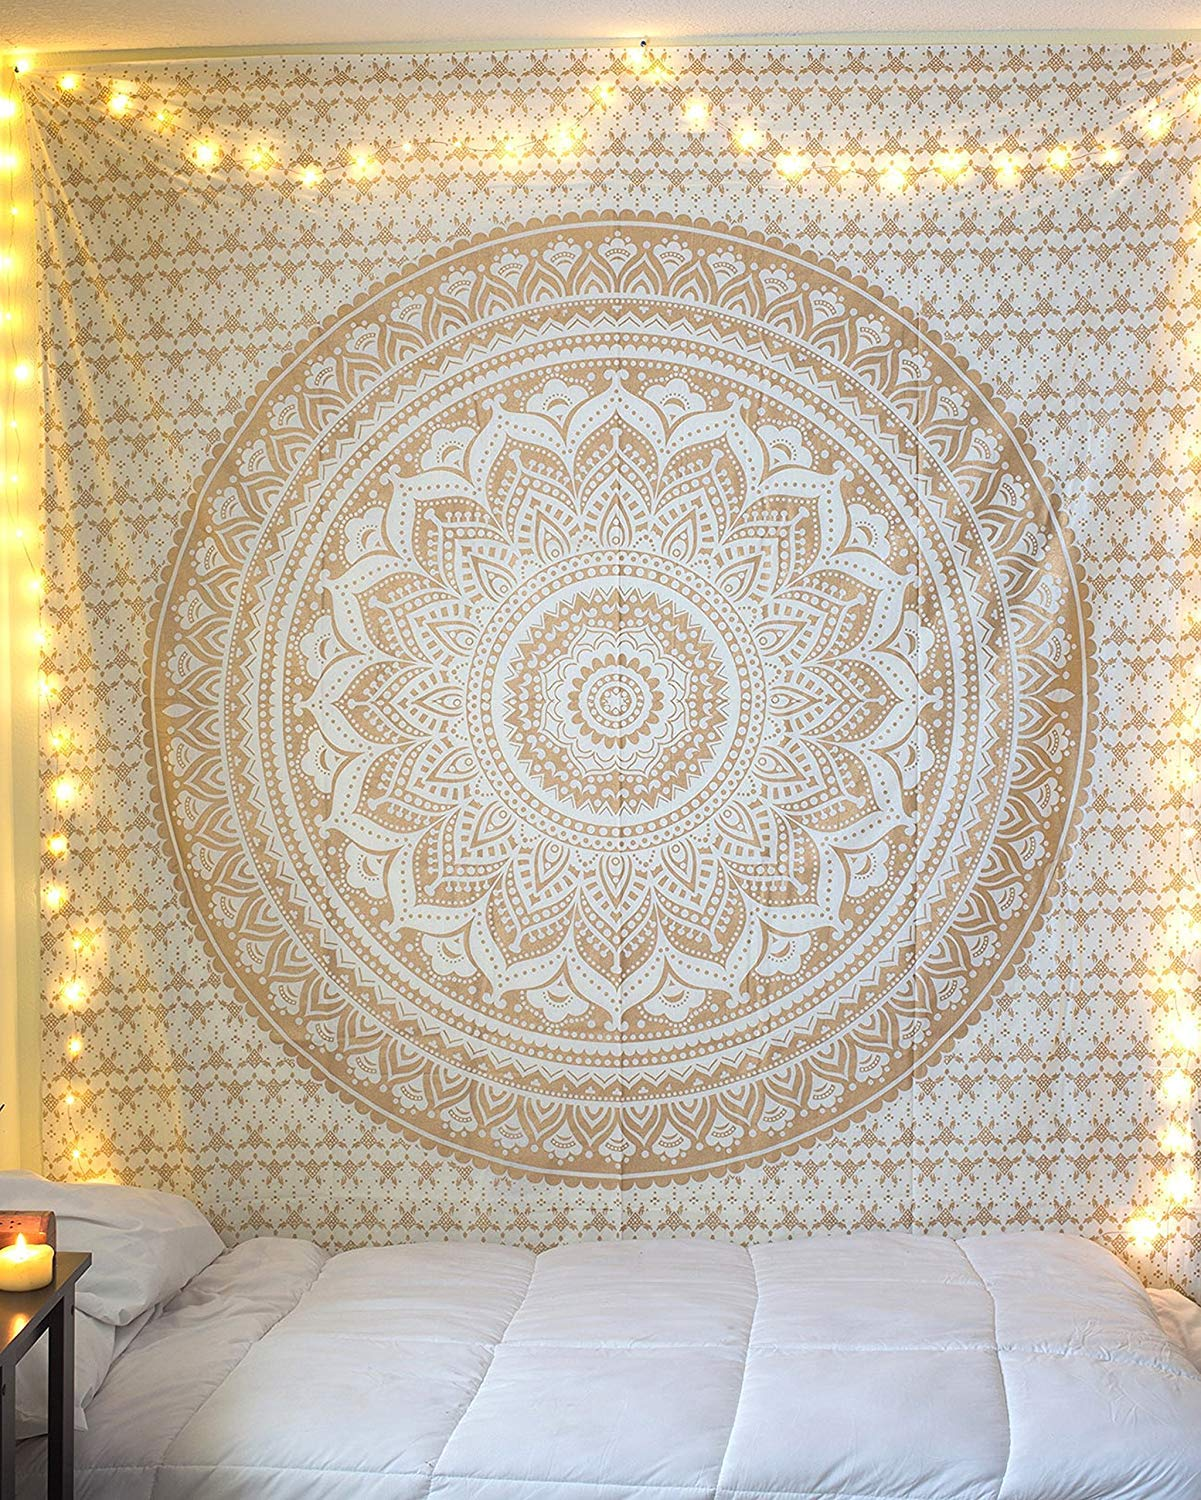 Tapestry Wall Hanging Golden Ombre Tapestry Gold Tapestry Ombre Bedding Mandala Tapestry Gold Multi Color Indian Mandala Wall Art Hippie Wall Tapestry Hanging (Gold, 85x55 Inch)